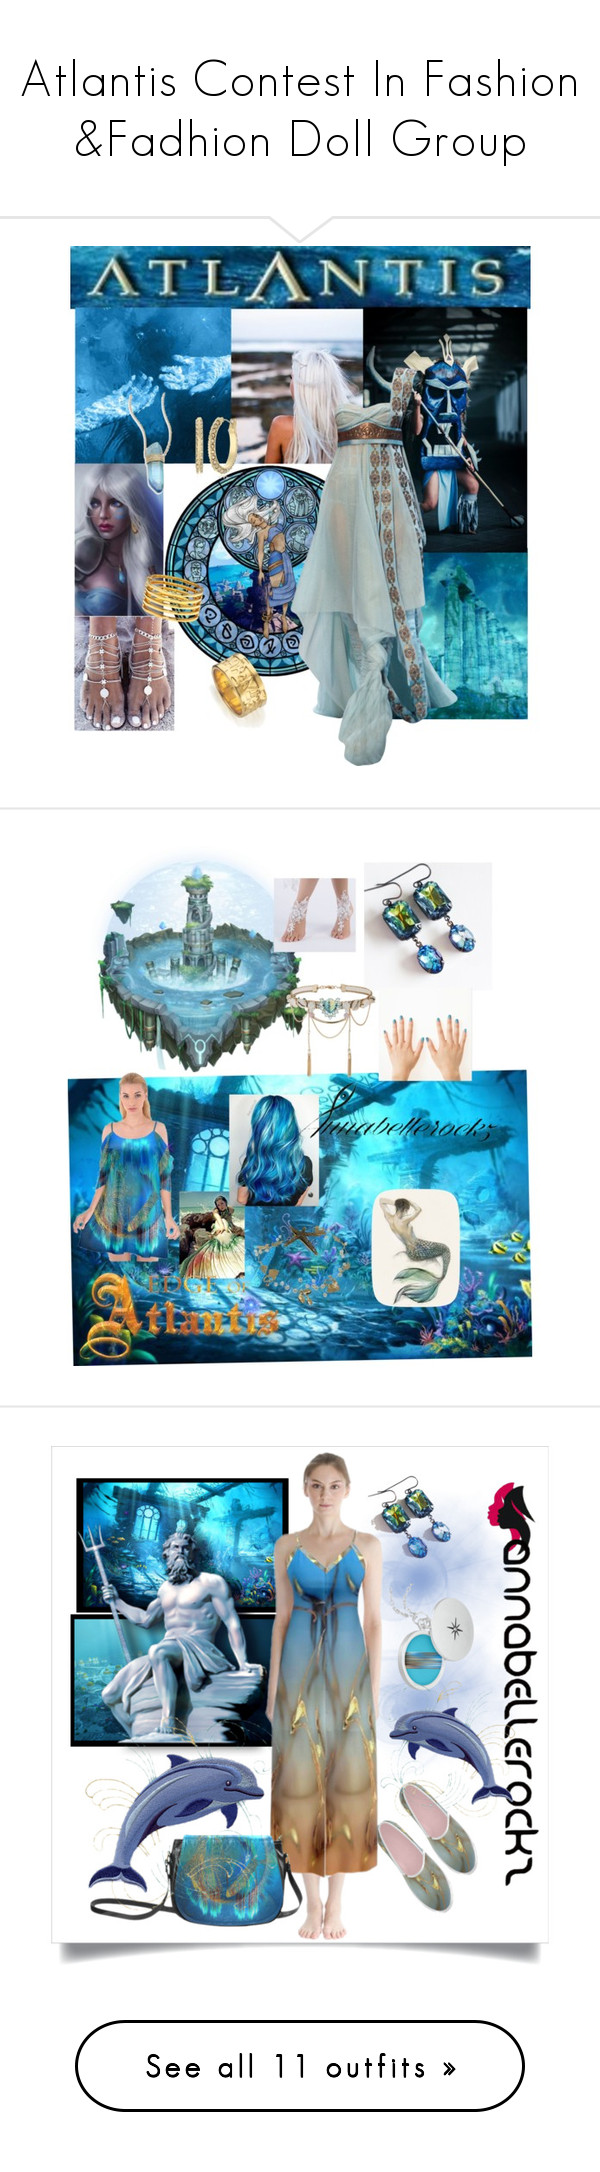 """Atlantis Contest In Fashion &Fadhion Doll Group"" by ragnh-mjos ❤ liked on Polyvore featuring contest, doll, atlantis, Atlantis, Disney, Jacquie Aiche, Diane Von Furstenberg, Monica Vinader, Kenneth Jay Lane and MINX"